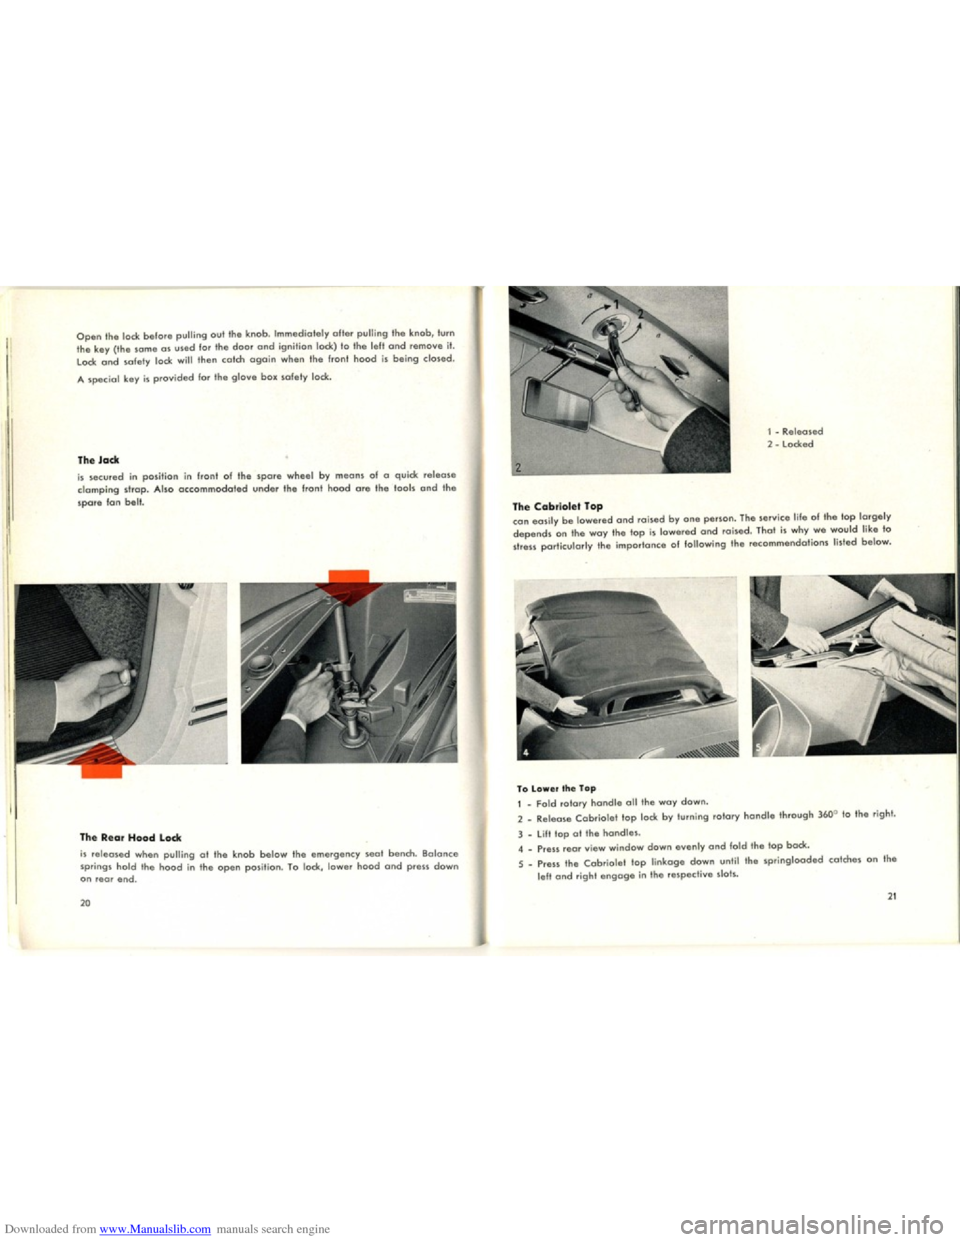 VOLKSWAGEN KARMANN GHIA 1958 1.G Owners Manual, Page 12